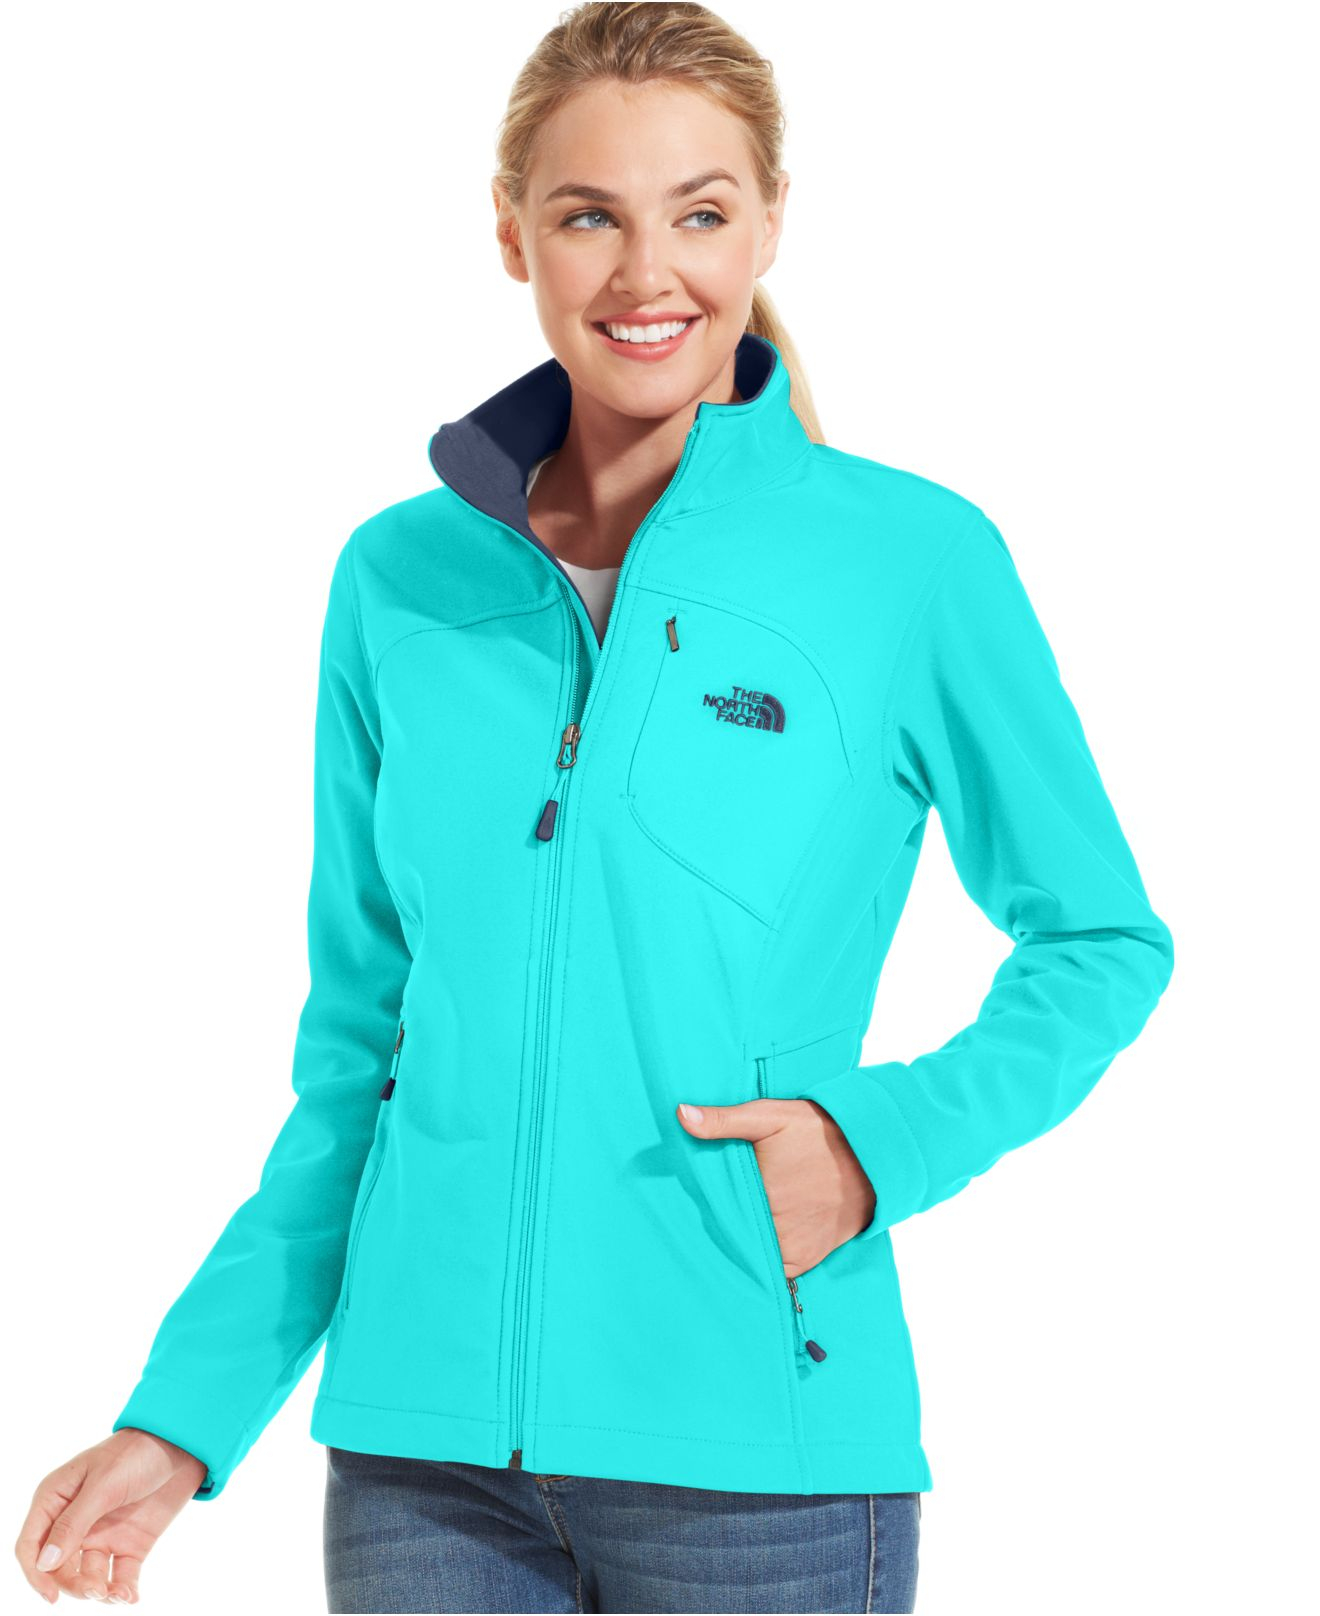 Lyst - The North Face Apex Bionic Soft-Shell Jacket in Black 38b81786d6